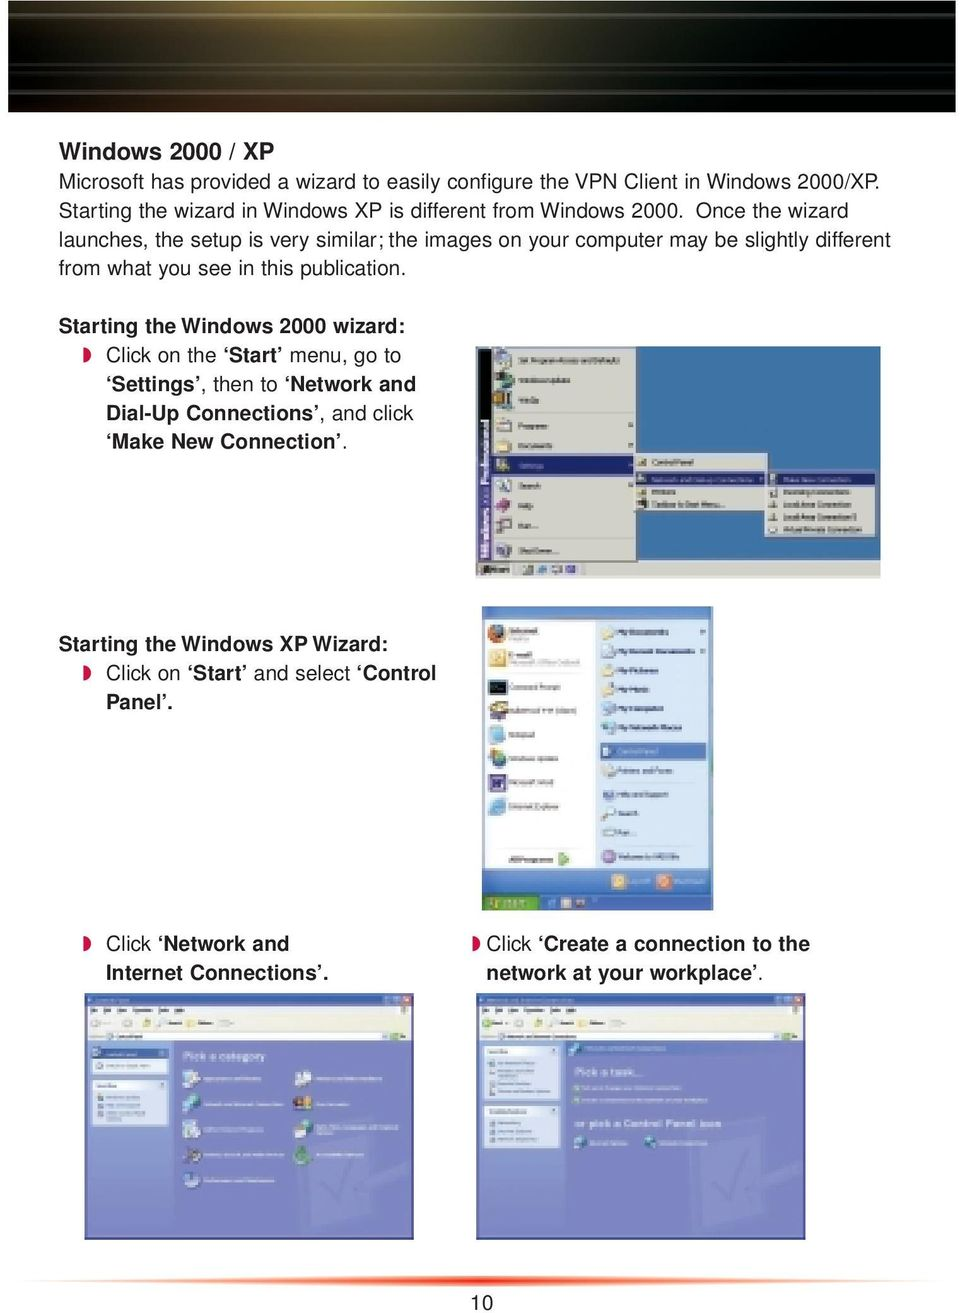 Once the wizard launches, the setup is very similar; the images on your computer may be slightly different from what you see in this publication.